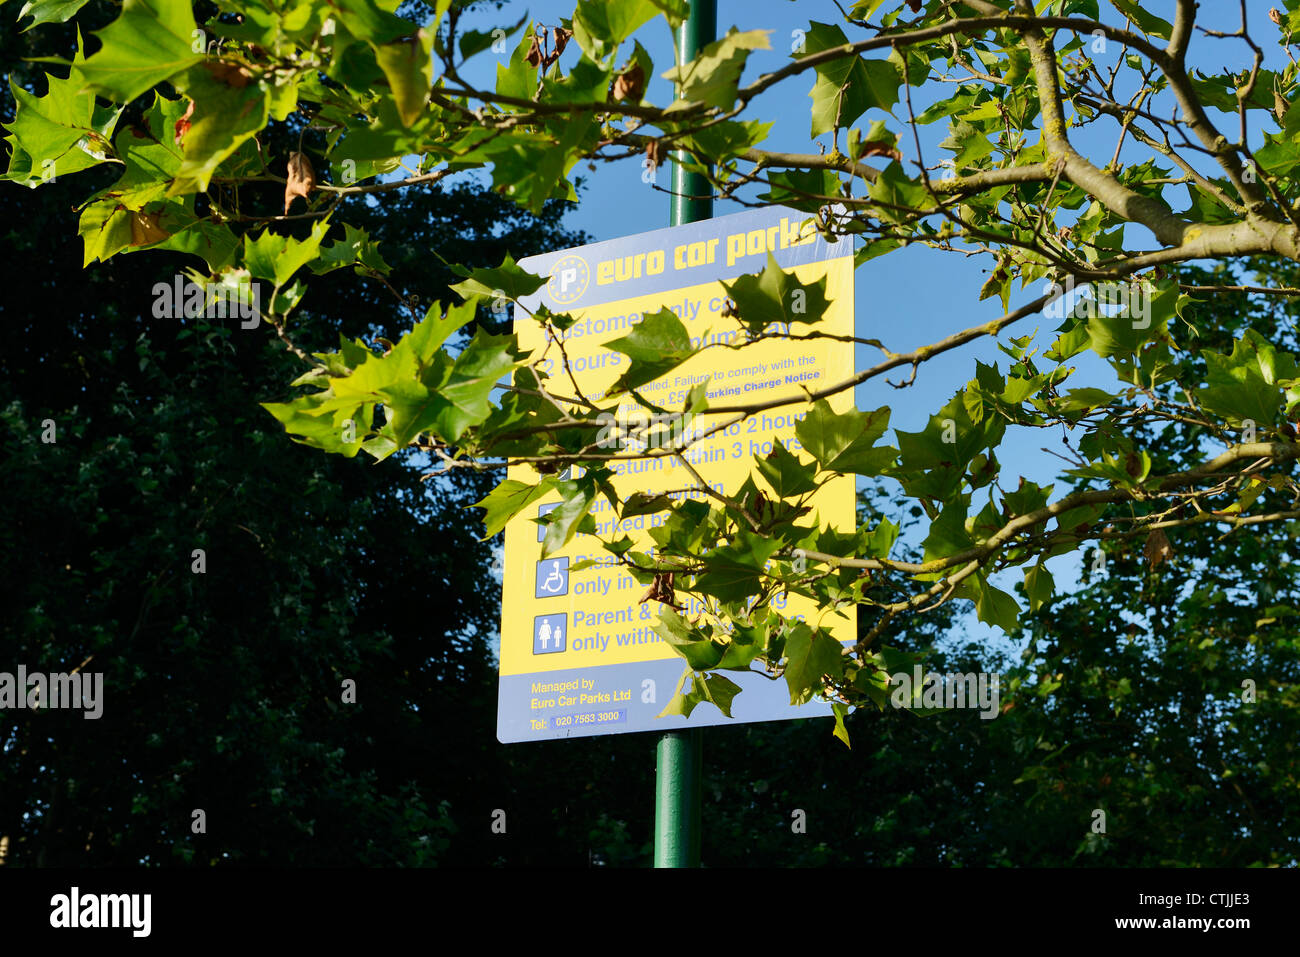 Car Park Sign Hidden By Tree Branches Stock Photo Royalty Free